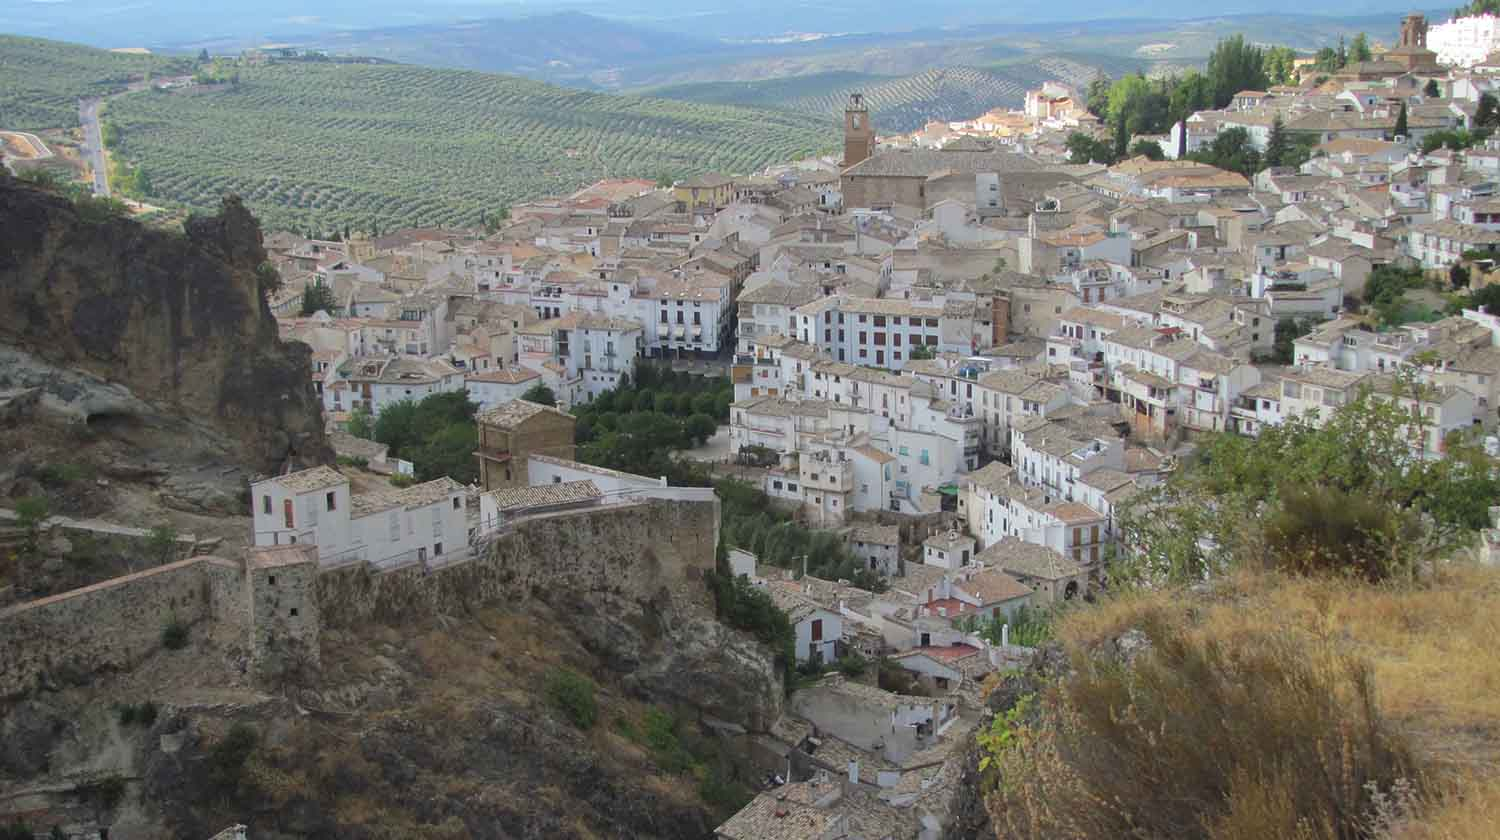 Cazorla, as seen from above